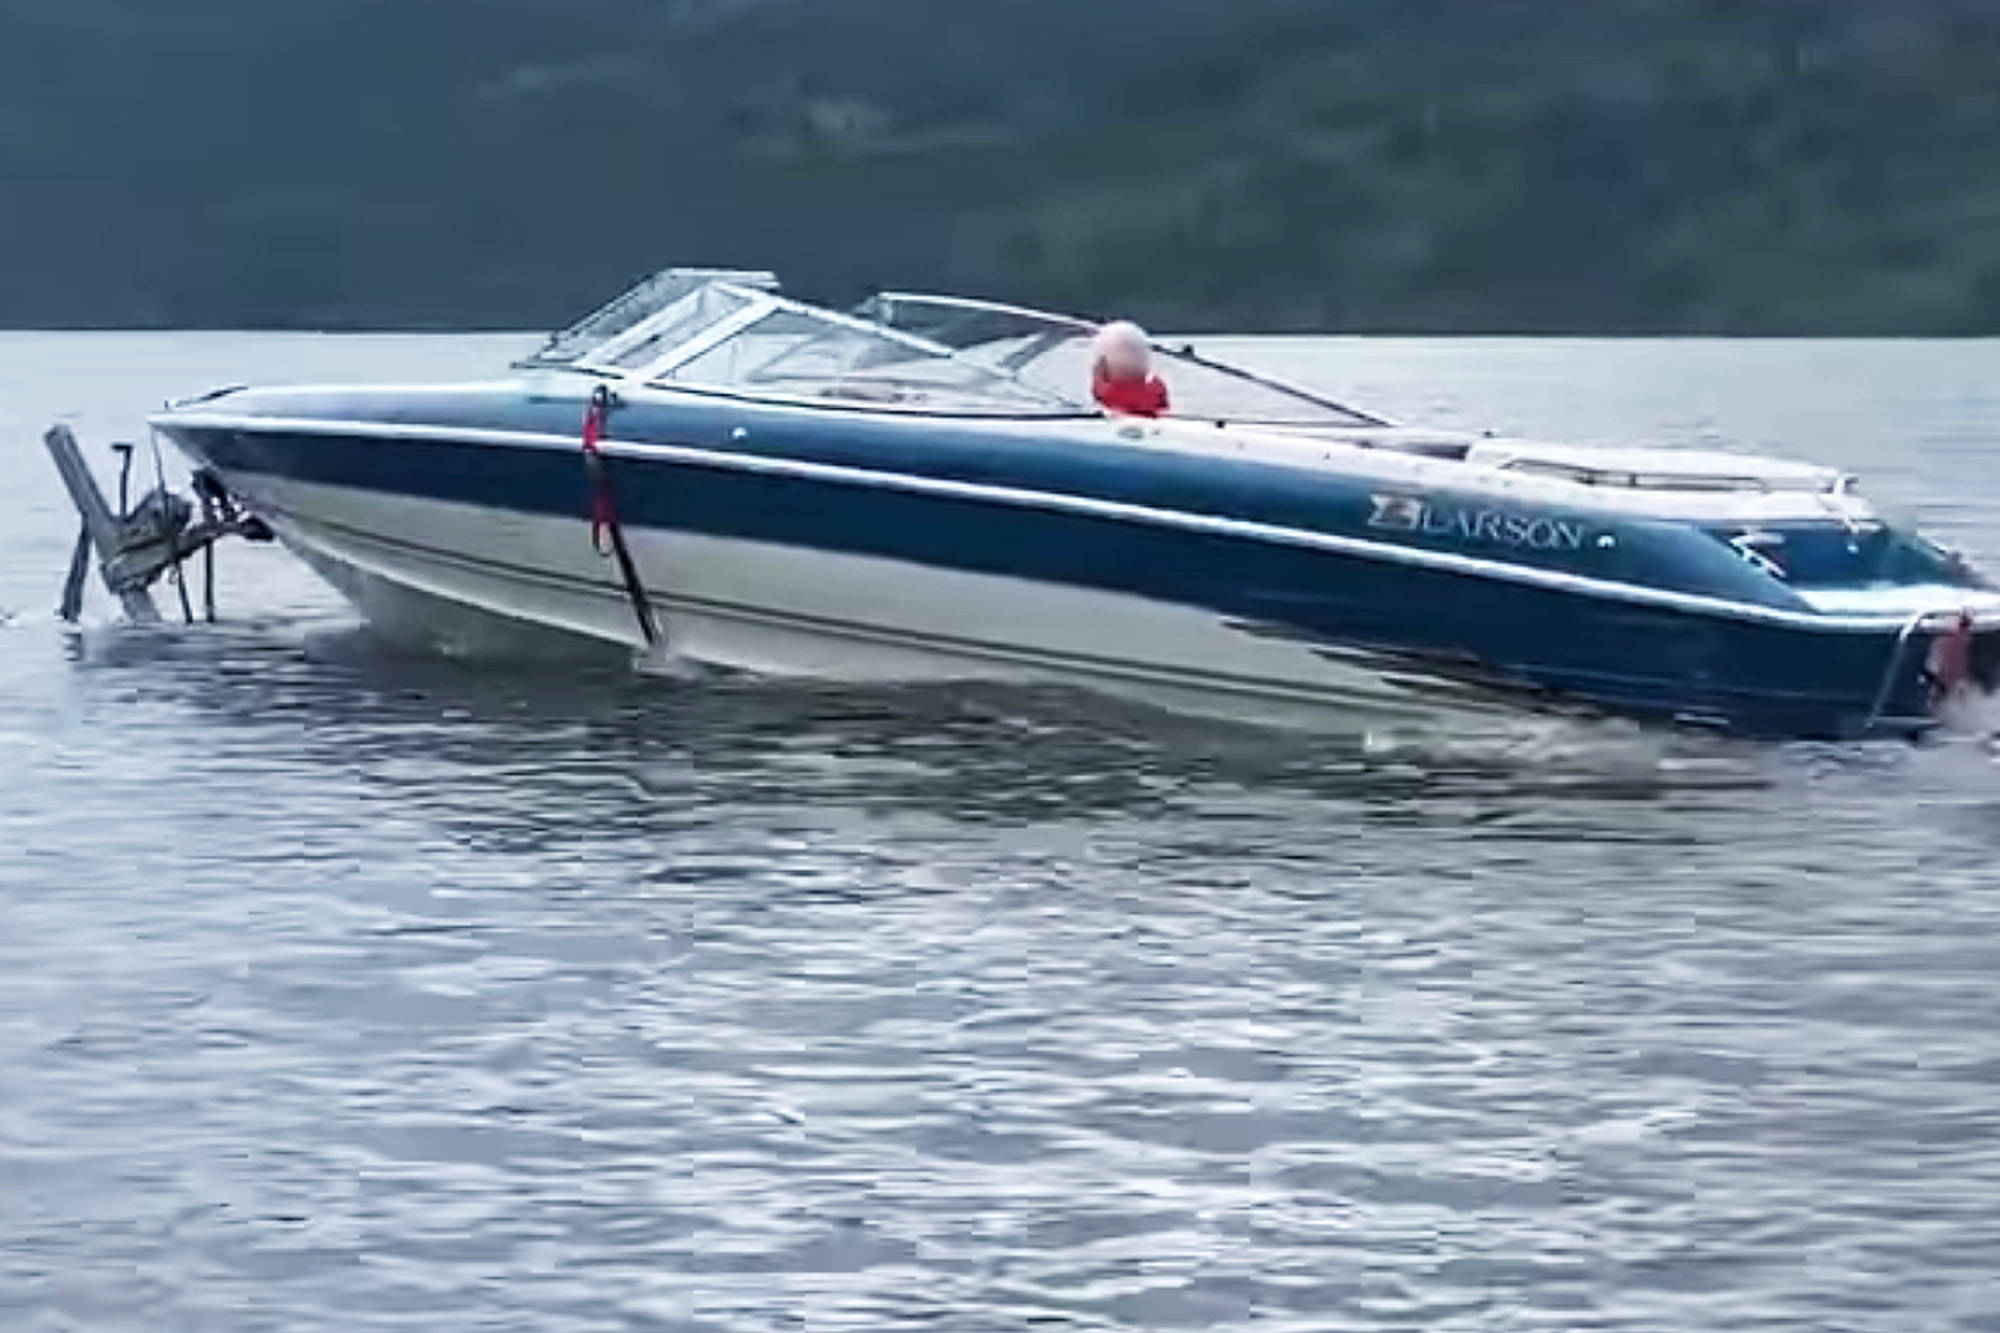 Rob Winder took a video of some unconventional boat travel as this boater appears to have taken to the water with his trailer still attached. (Rob Winder/Facebook)